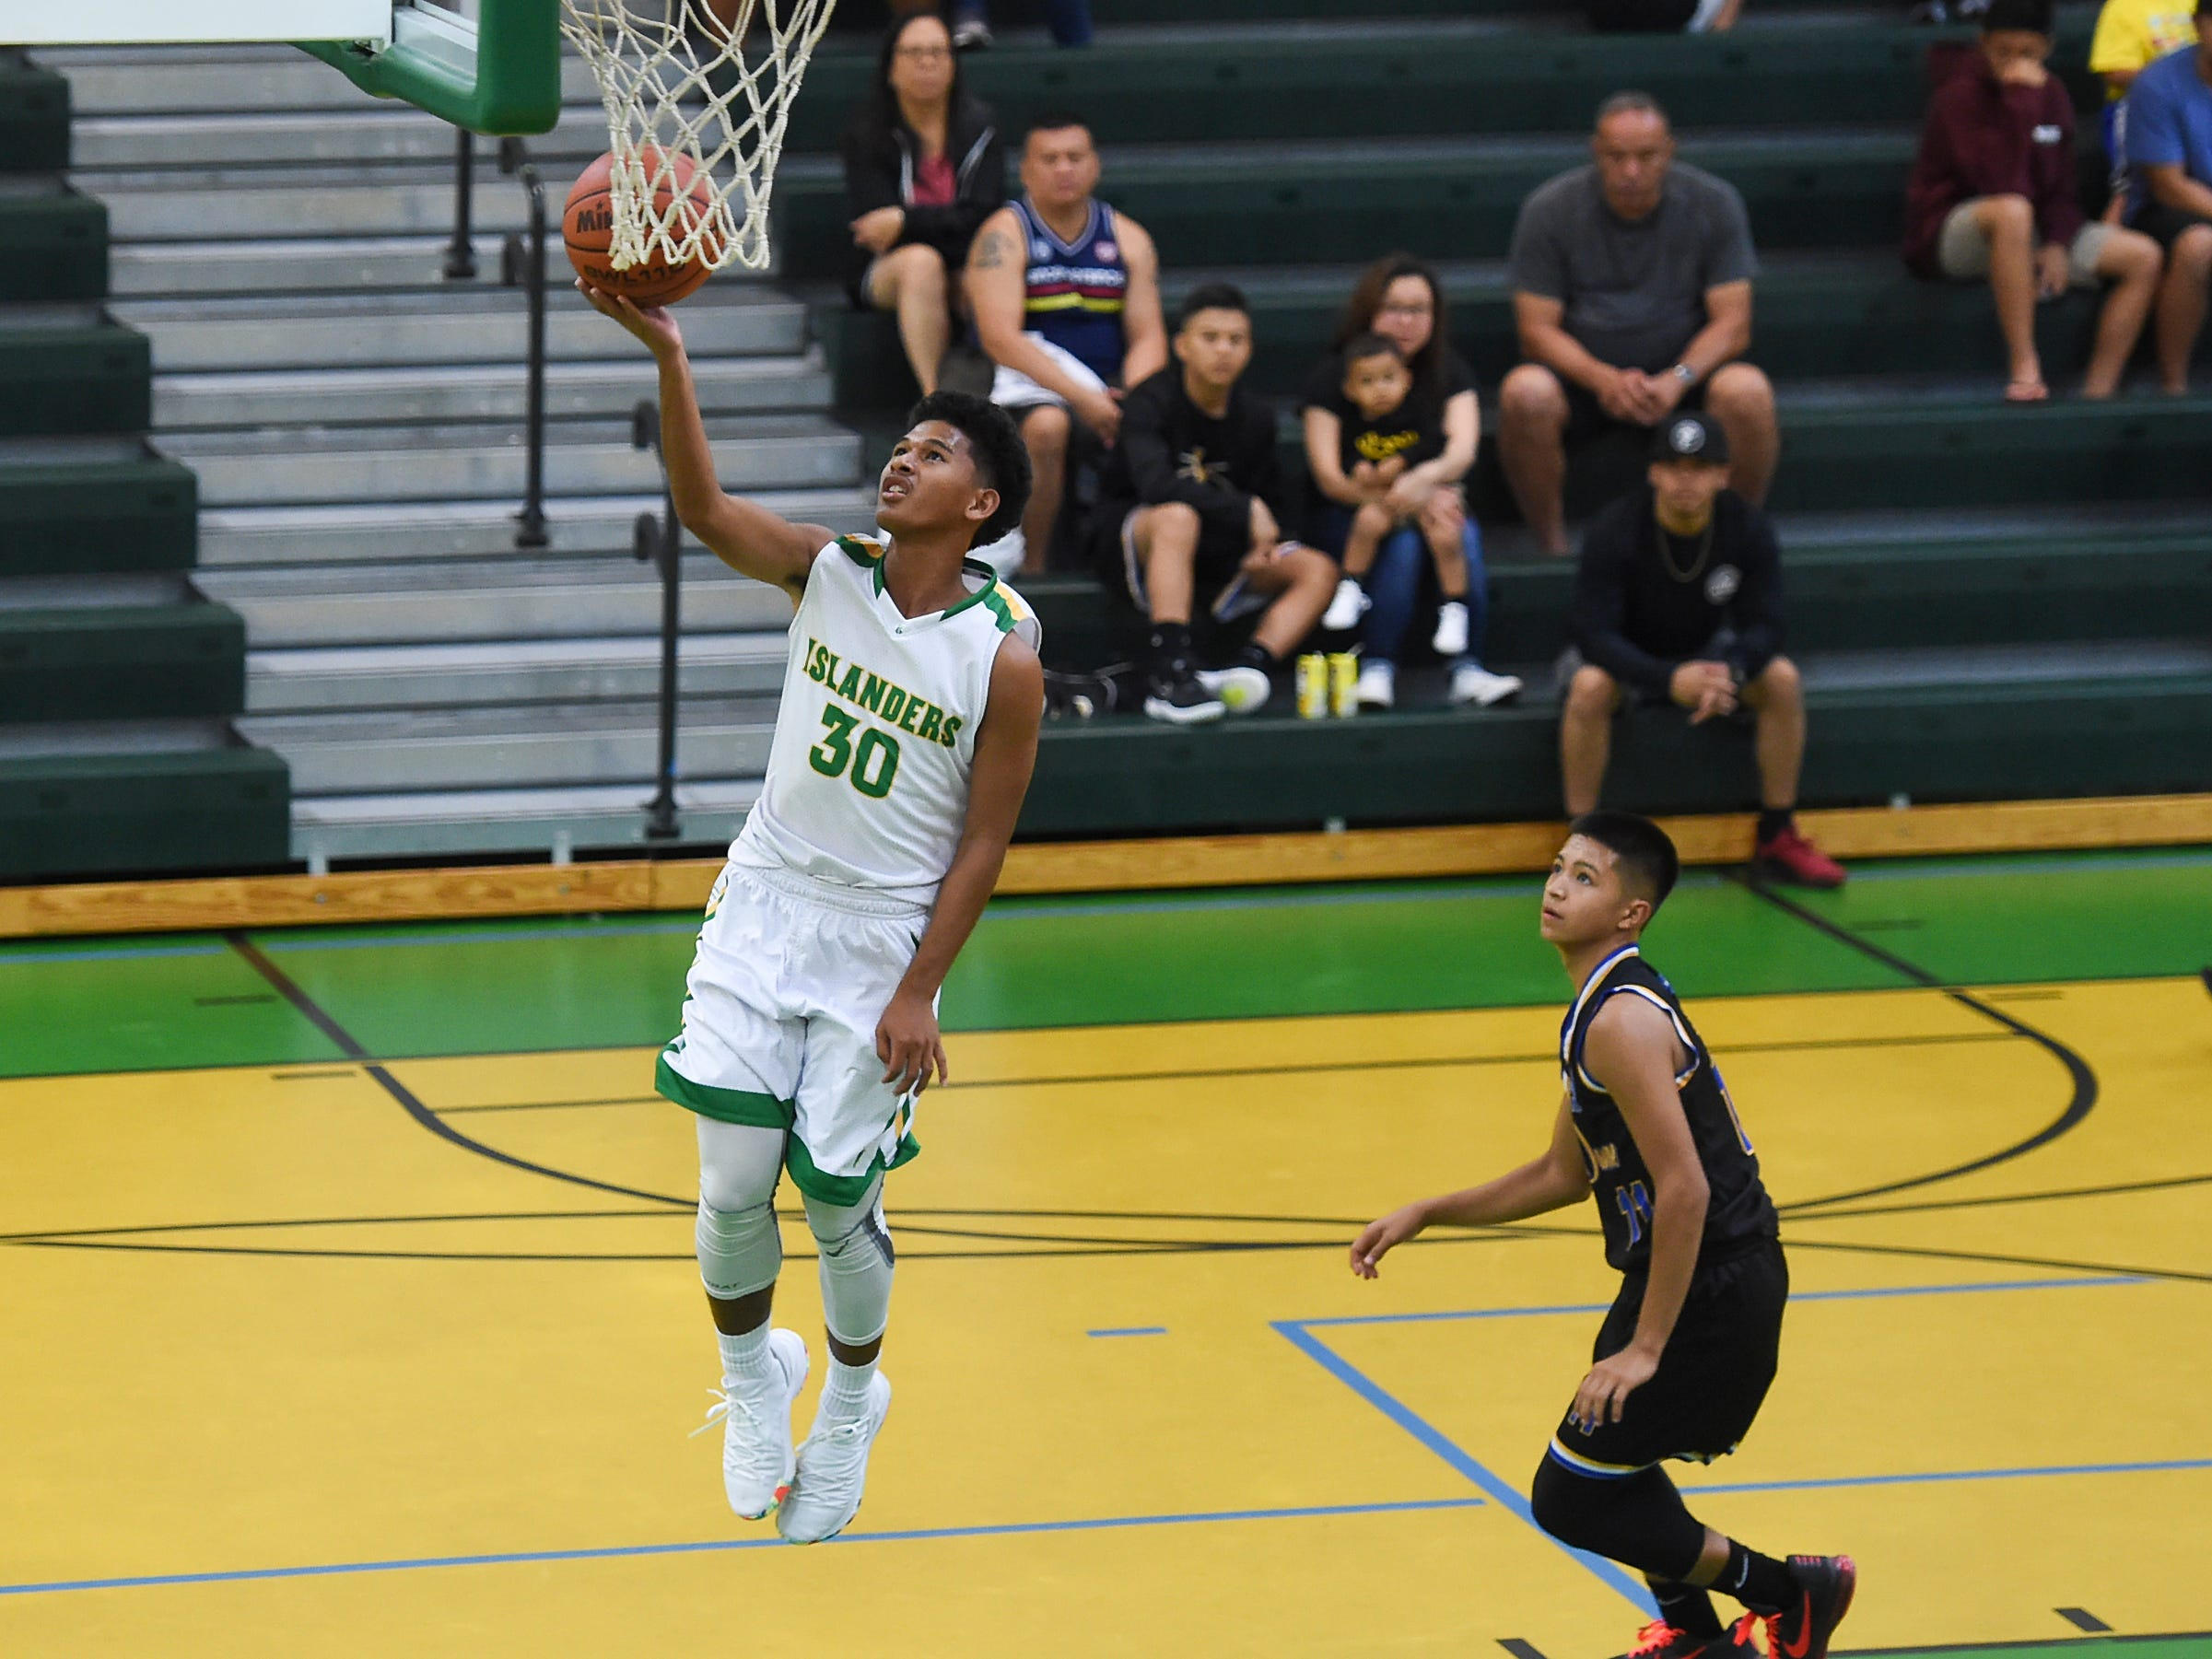 John F. Kennedy's Jeremiah Kintoki (30) scores on a break away layup against the Notre Dame Royals during their Independent Interscholastic Athletic Association of Guam Boys' Basketball game at the JFK High School Gym, Feb. 2, 2019.